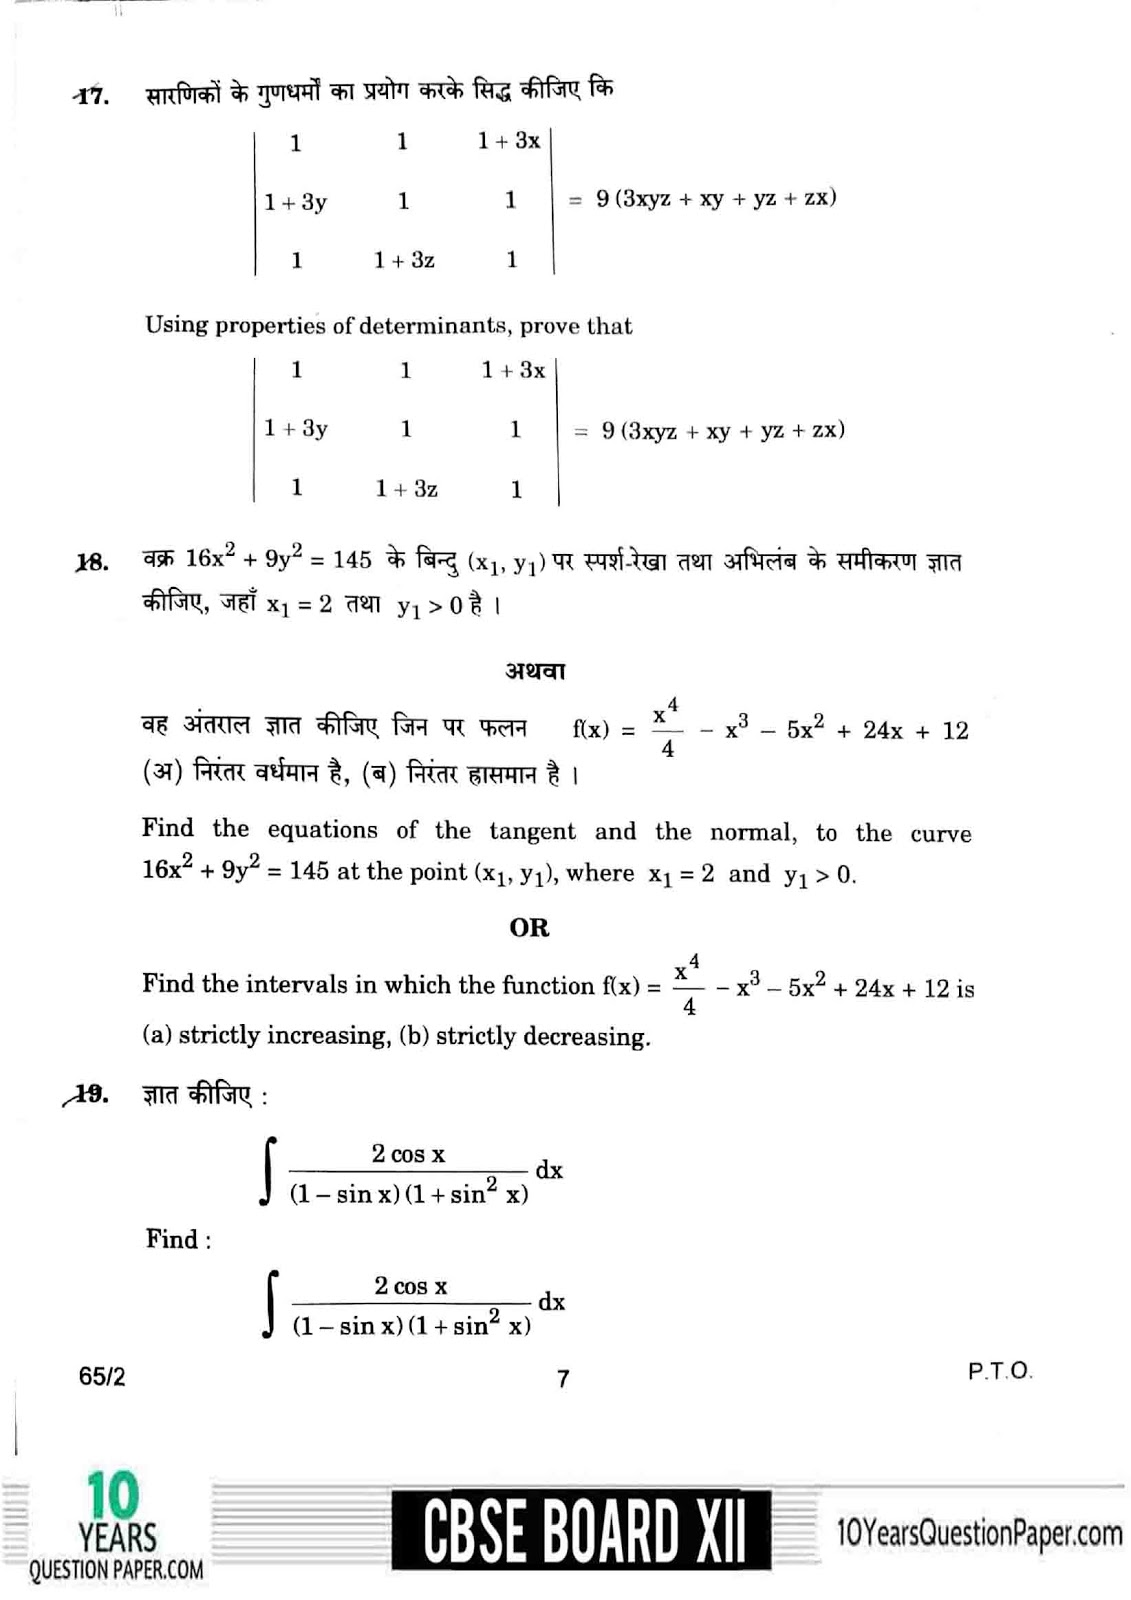 CBSE class 12 Maths 2018 question paper page-06